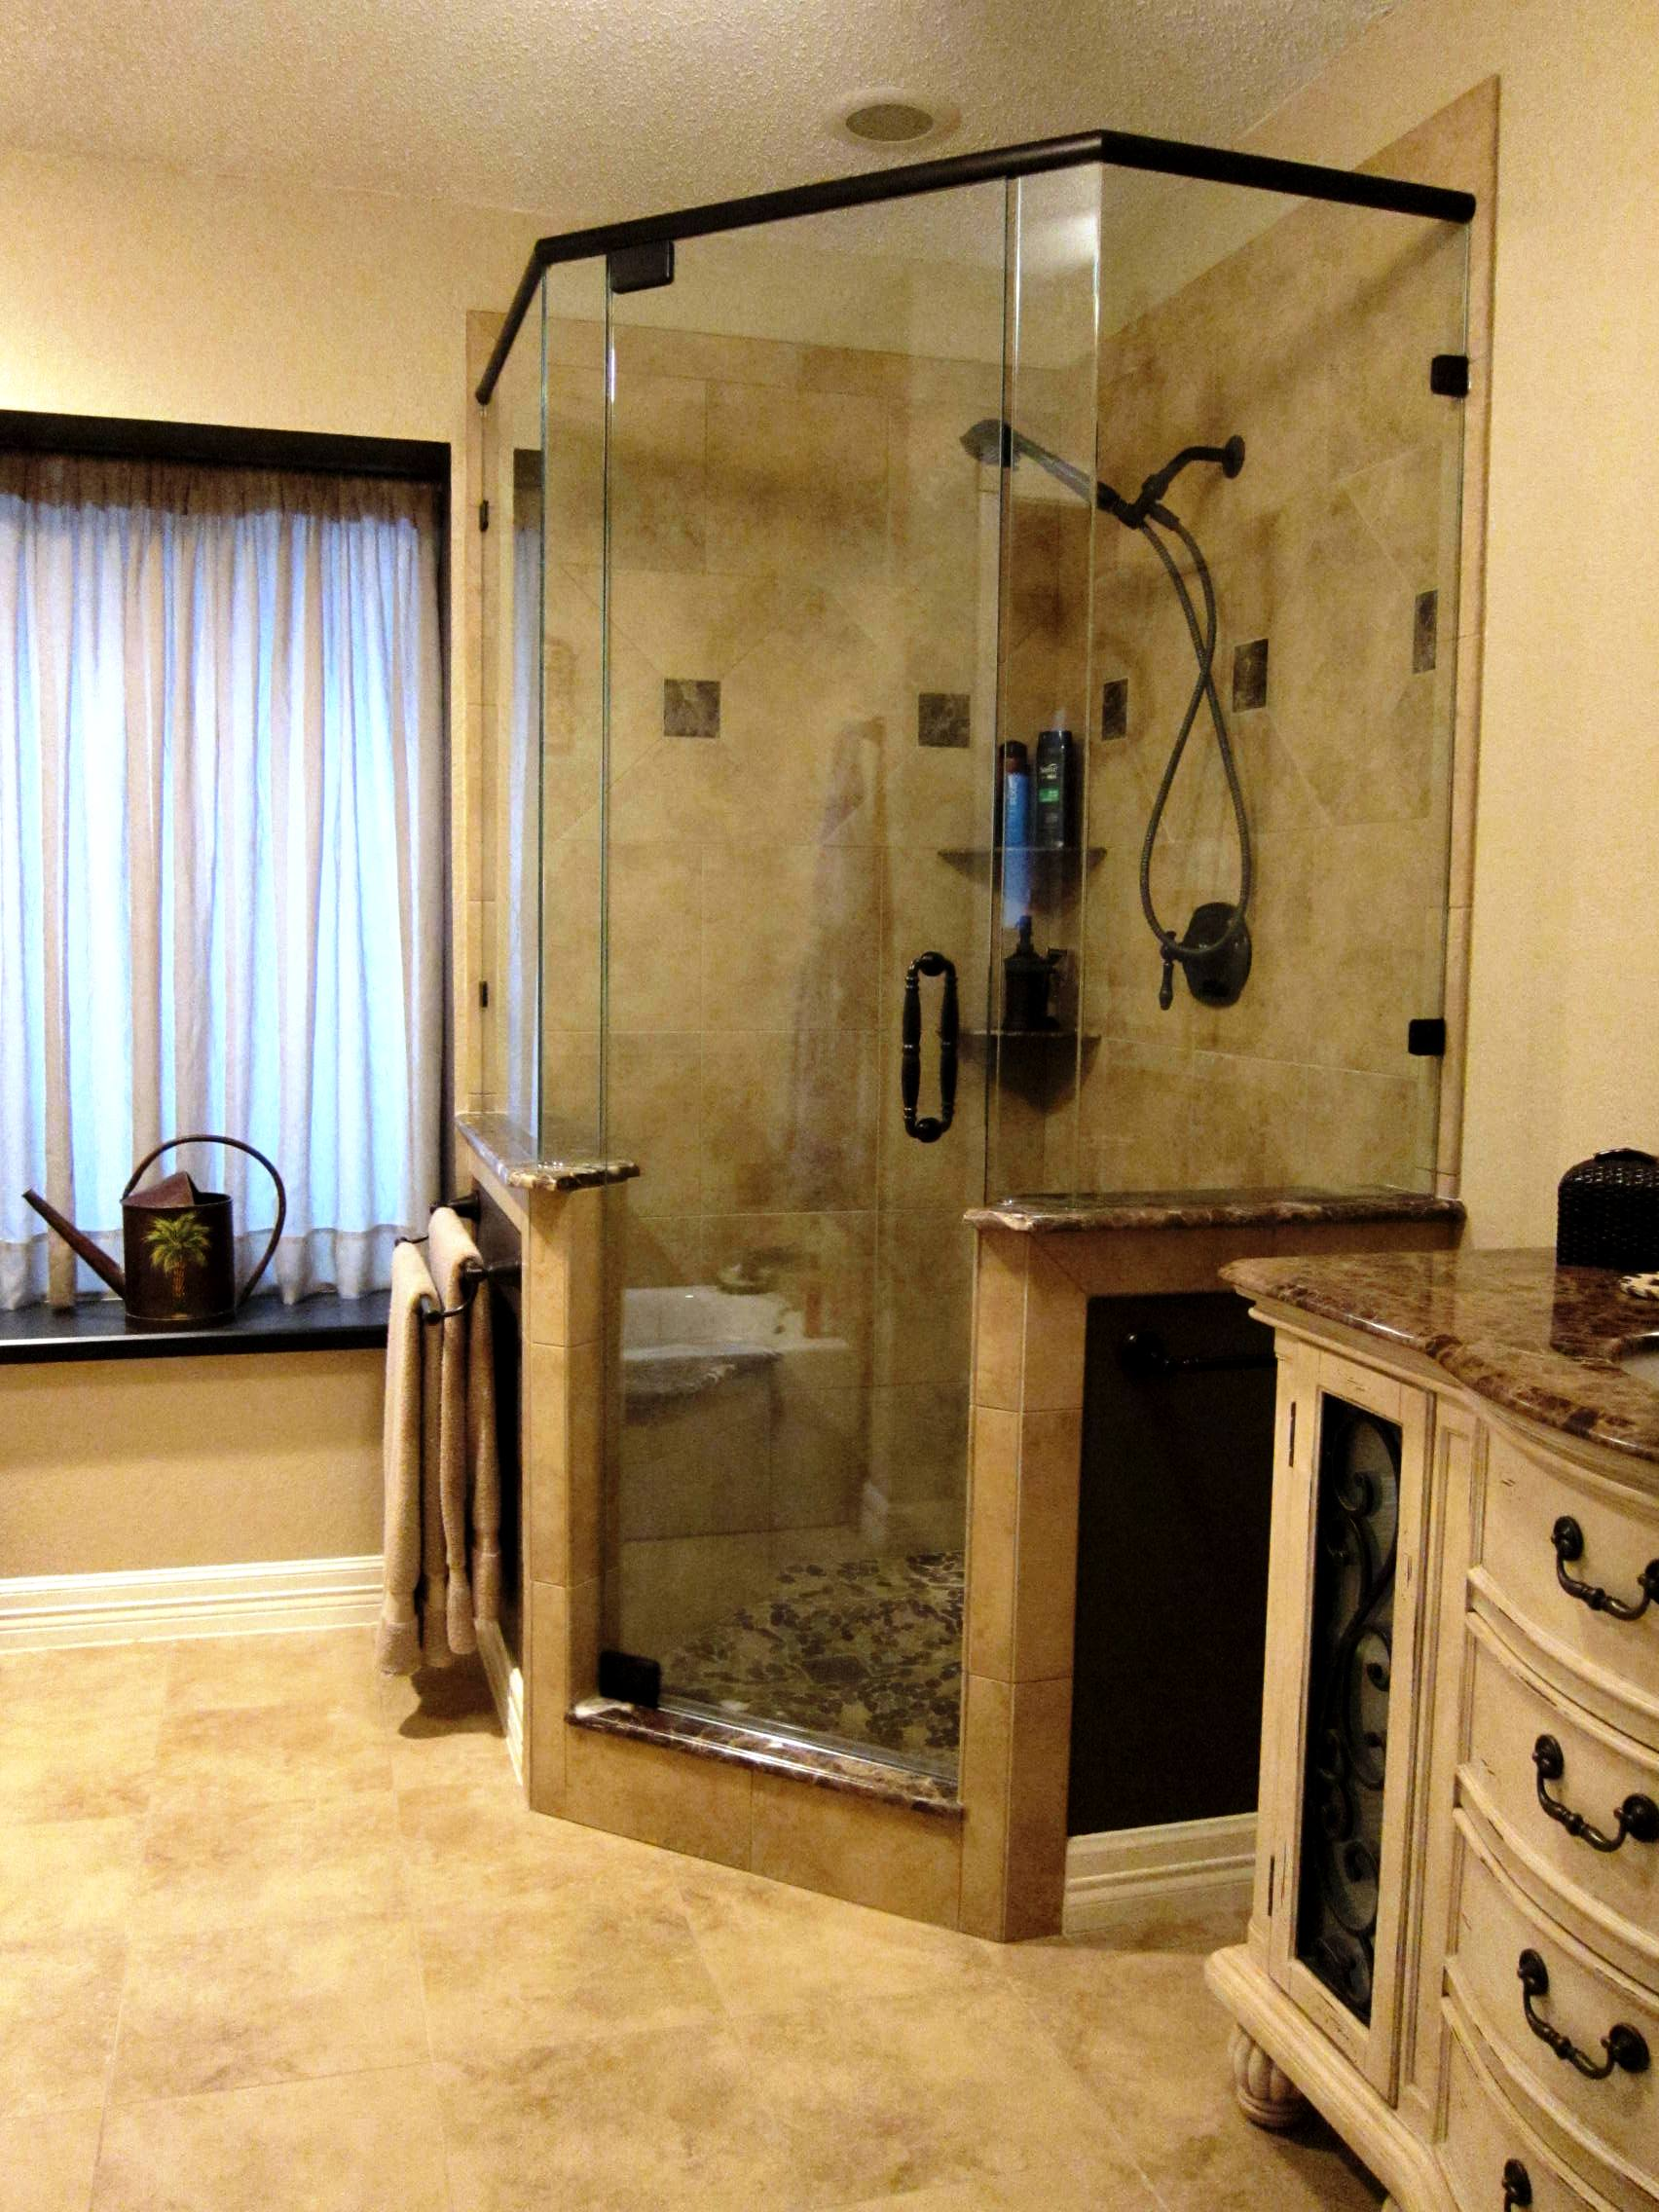 typical bathroom remodel cost in texas typical bathroom remodel cost